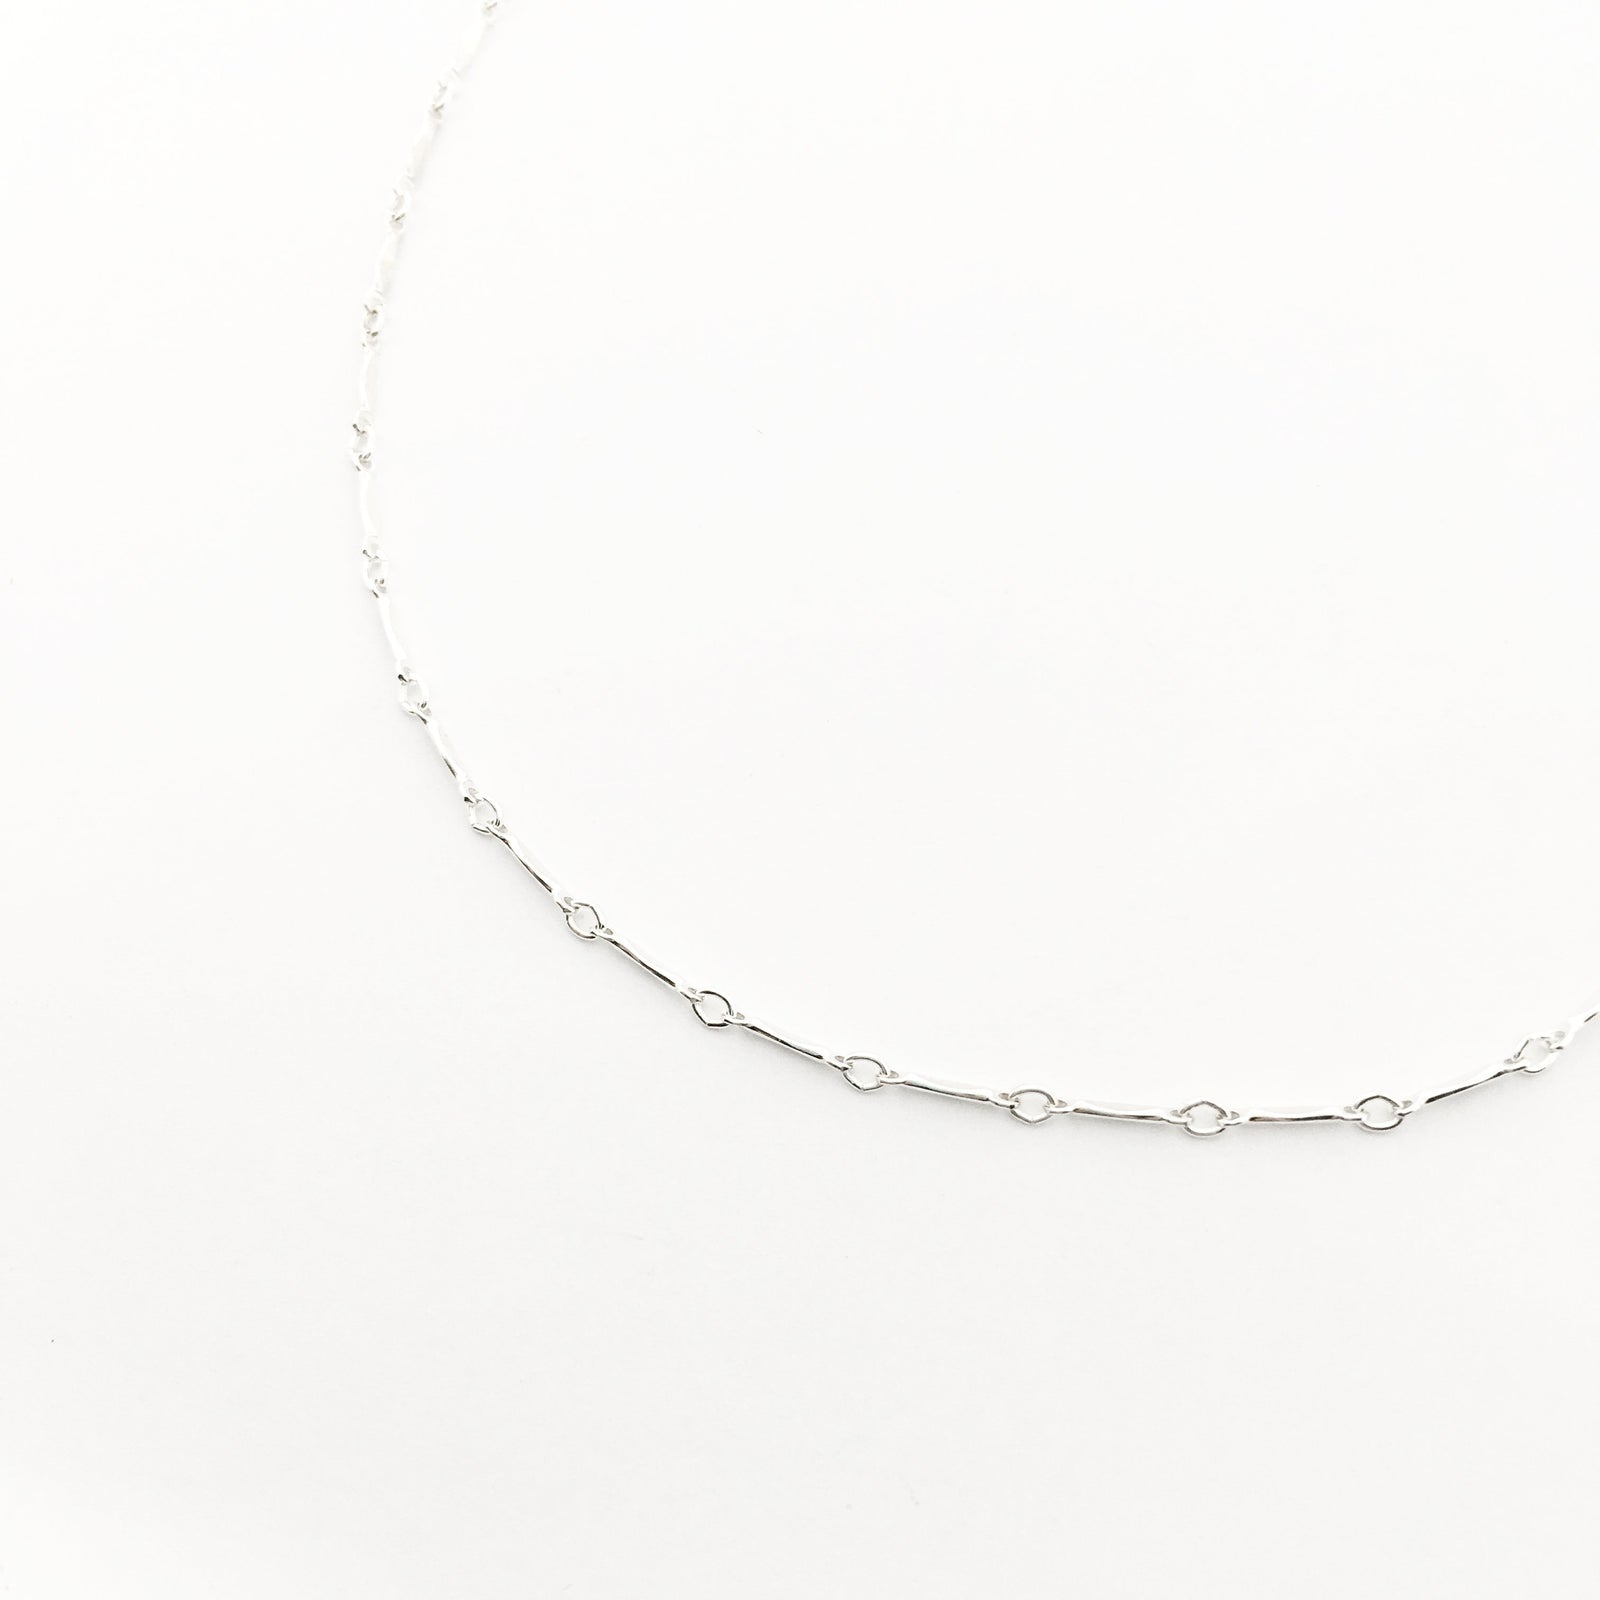 STERLING SILVER BAR CHAIN NECKLACE